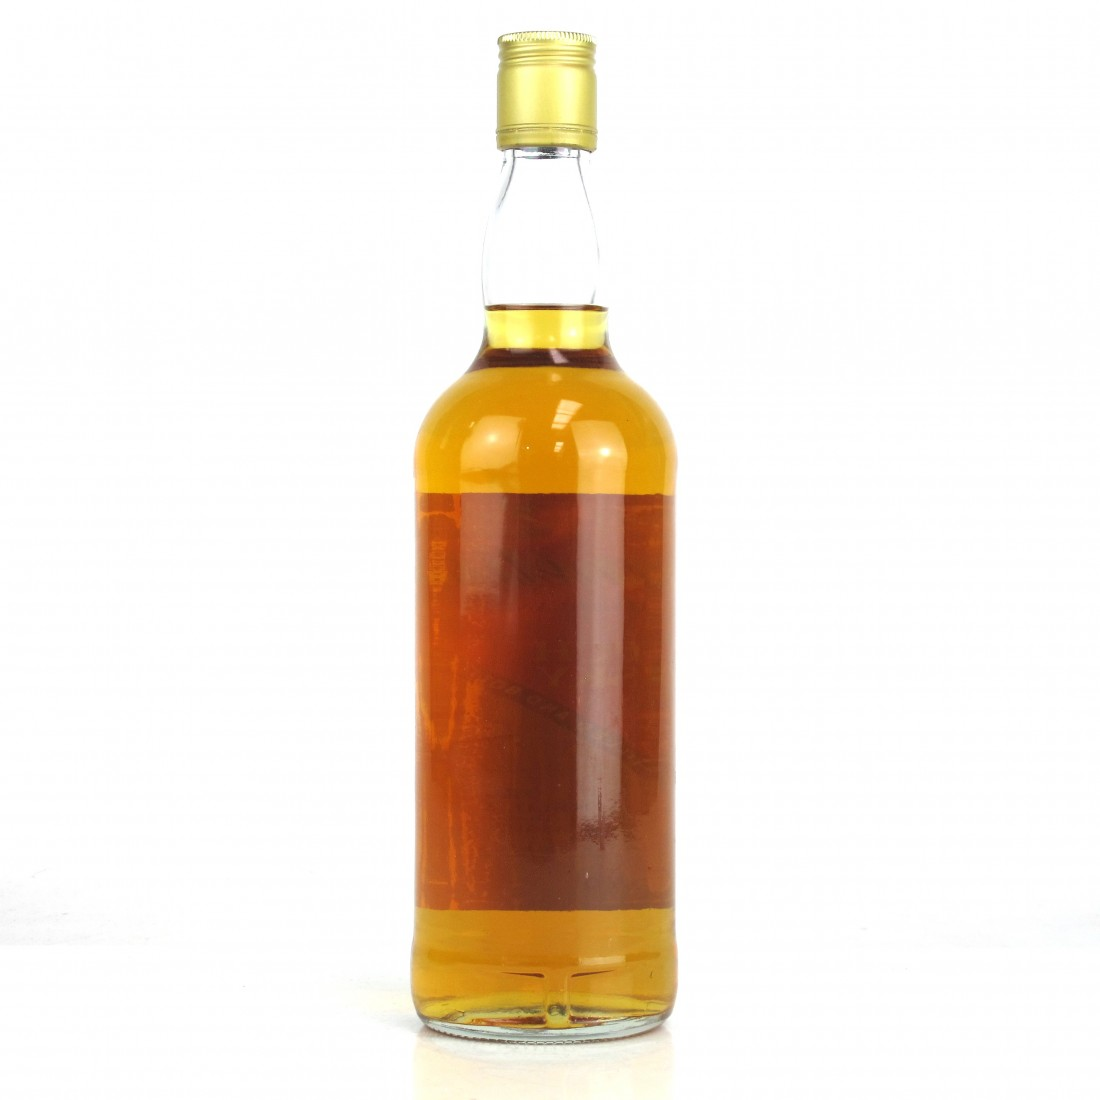 Clynelish 12 Year Old Ainslie and Heilbron Full Proof 1980s